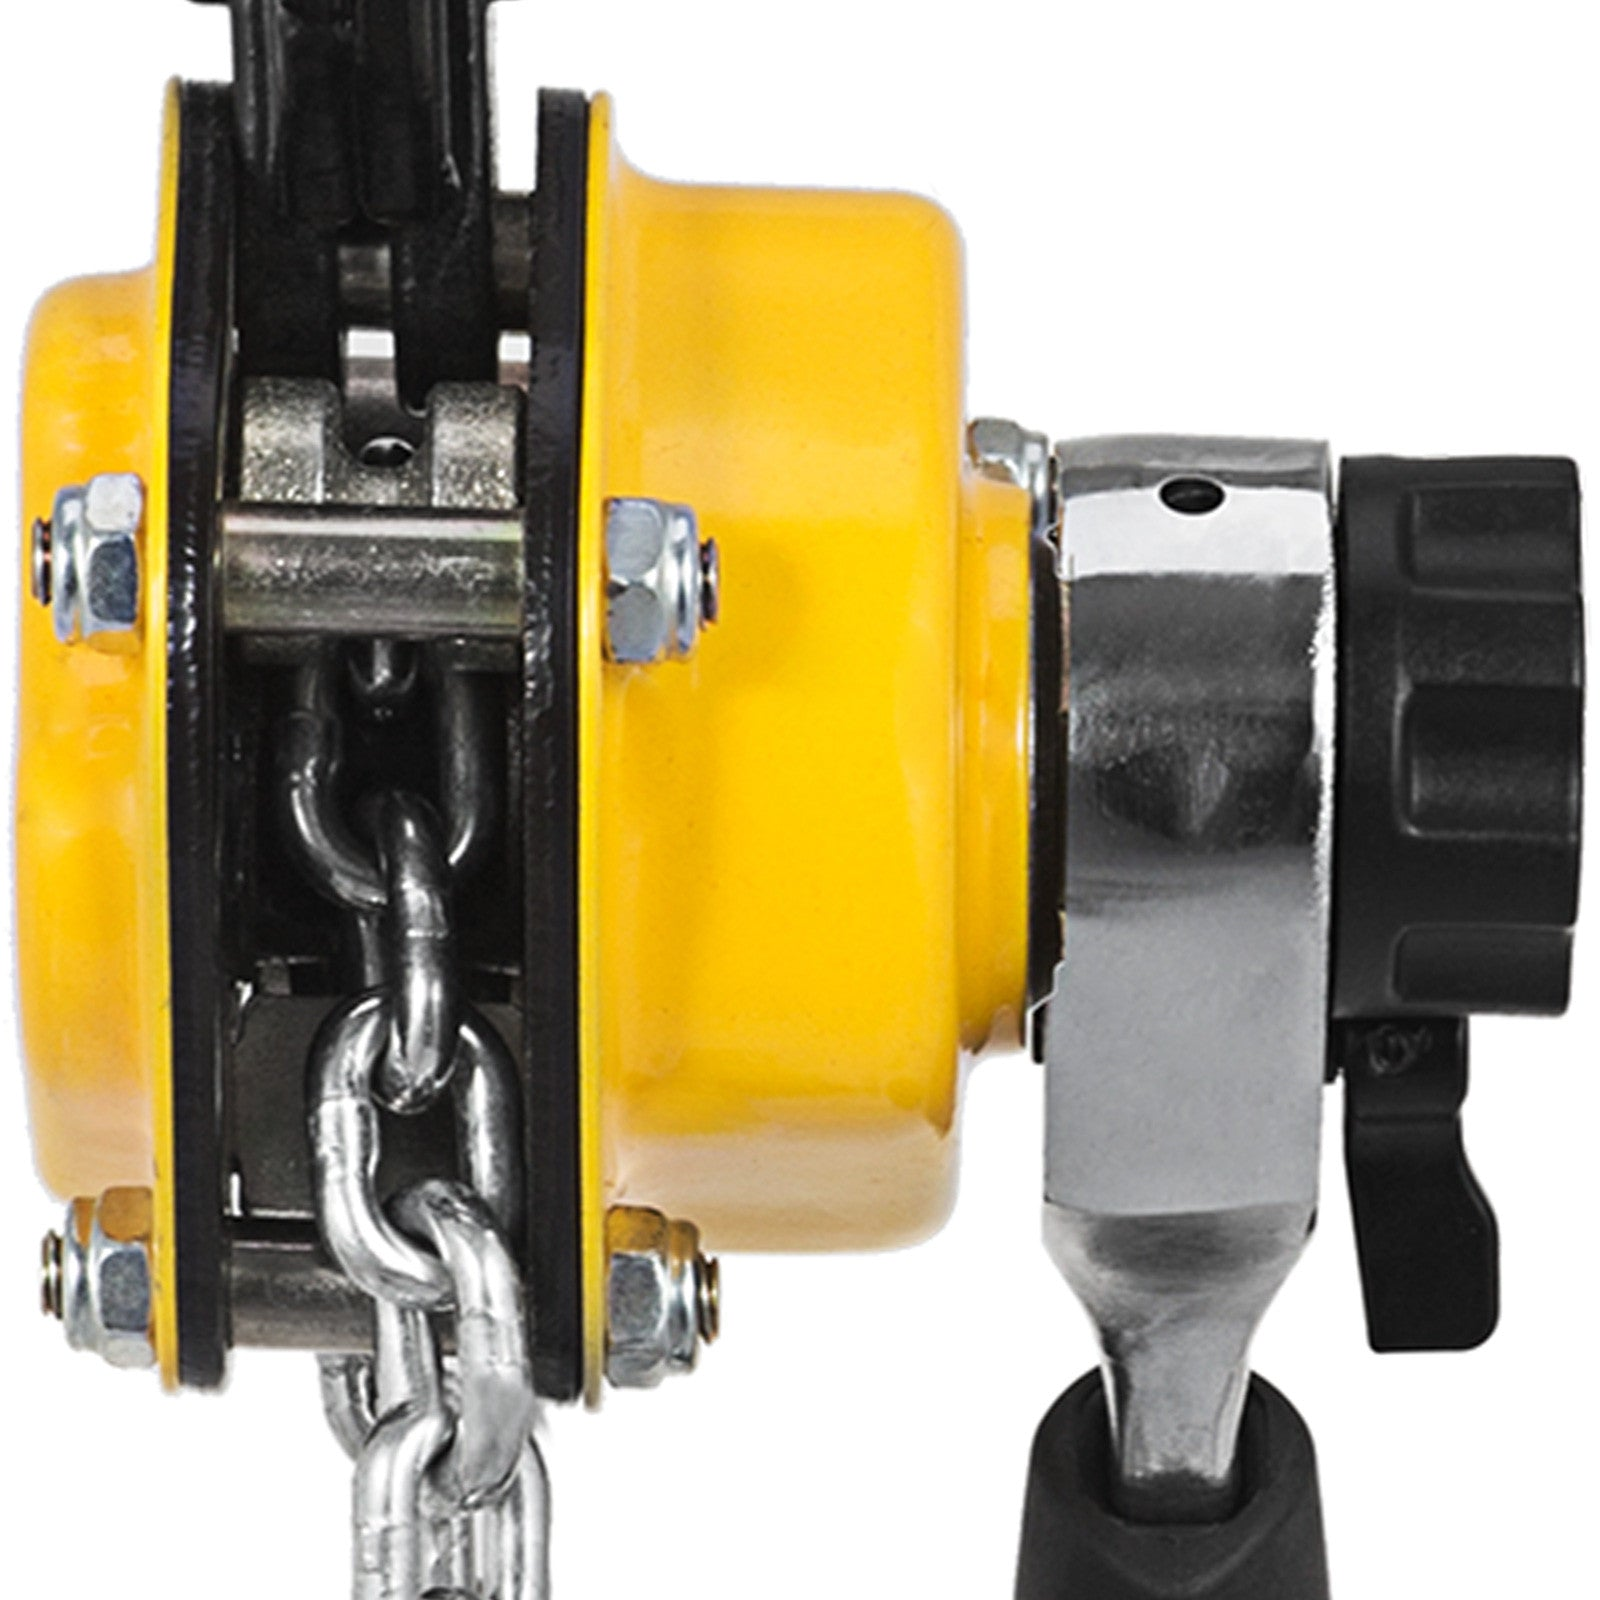 Manual Lever Chain Hoist 1100lbs 1/2 Ton Capacity- 20ft 6m Lift